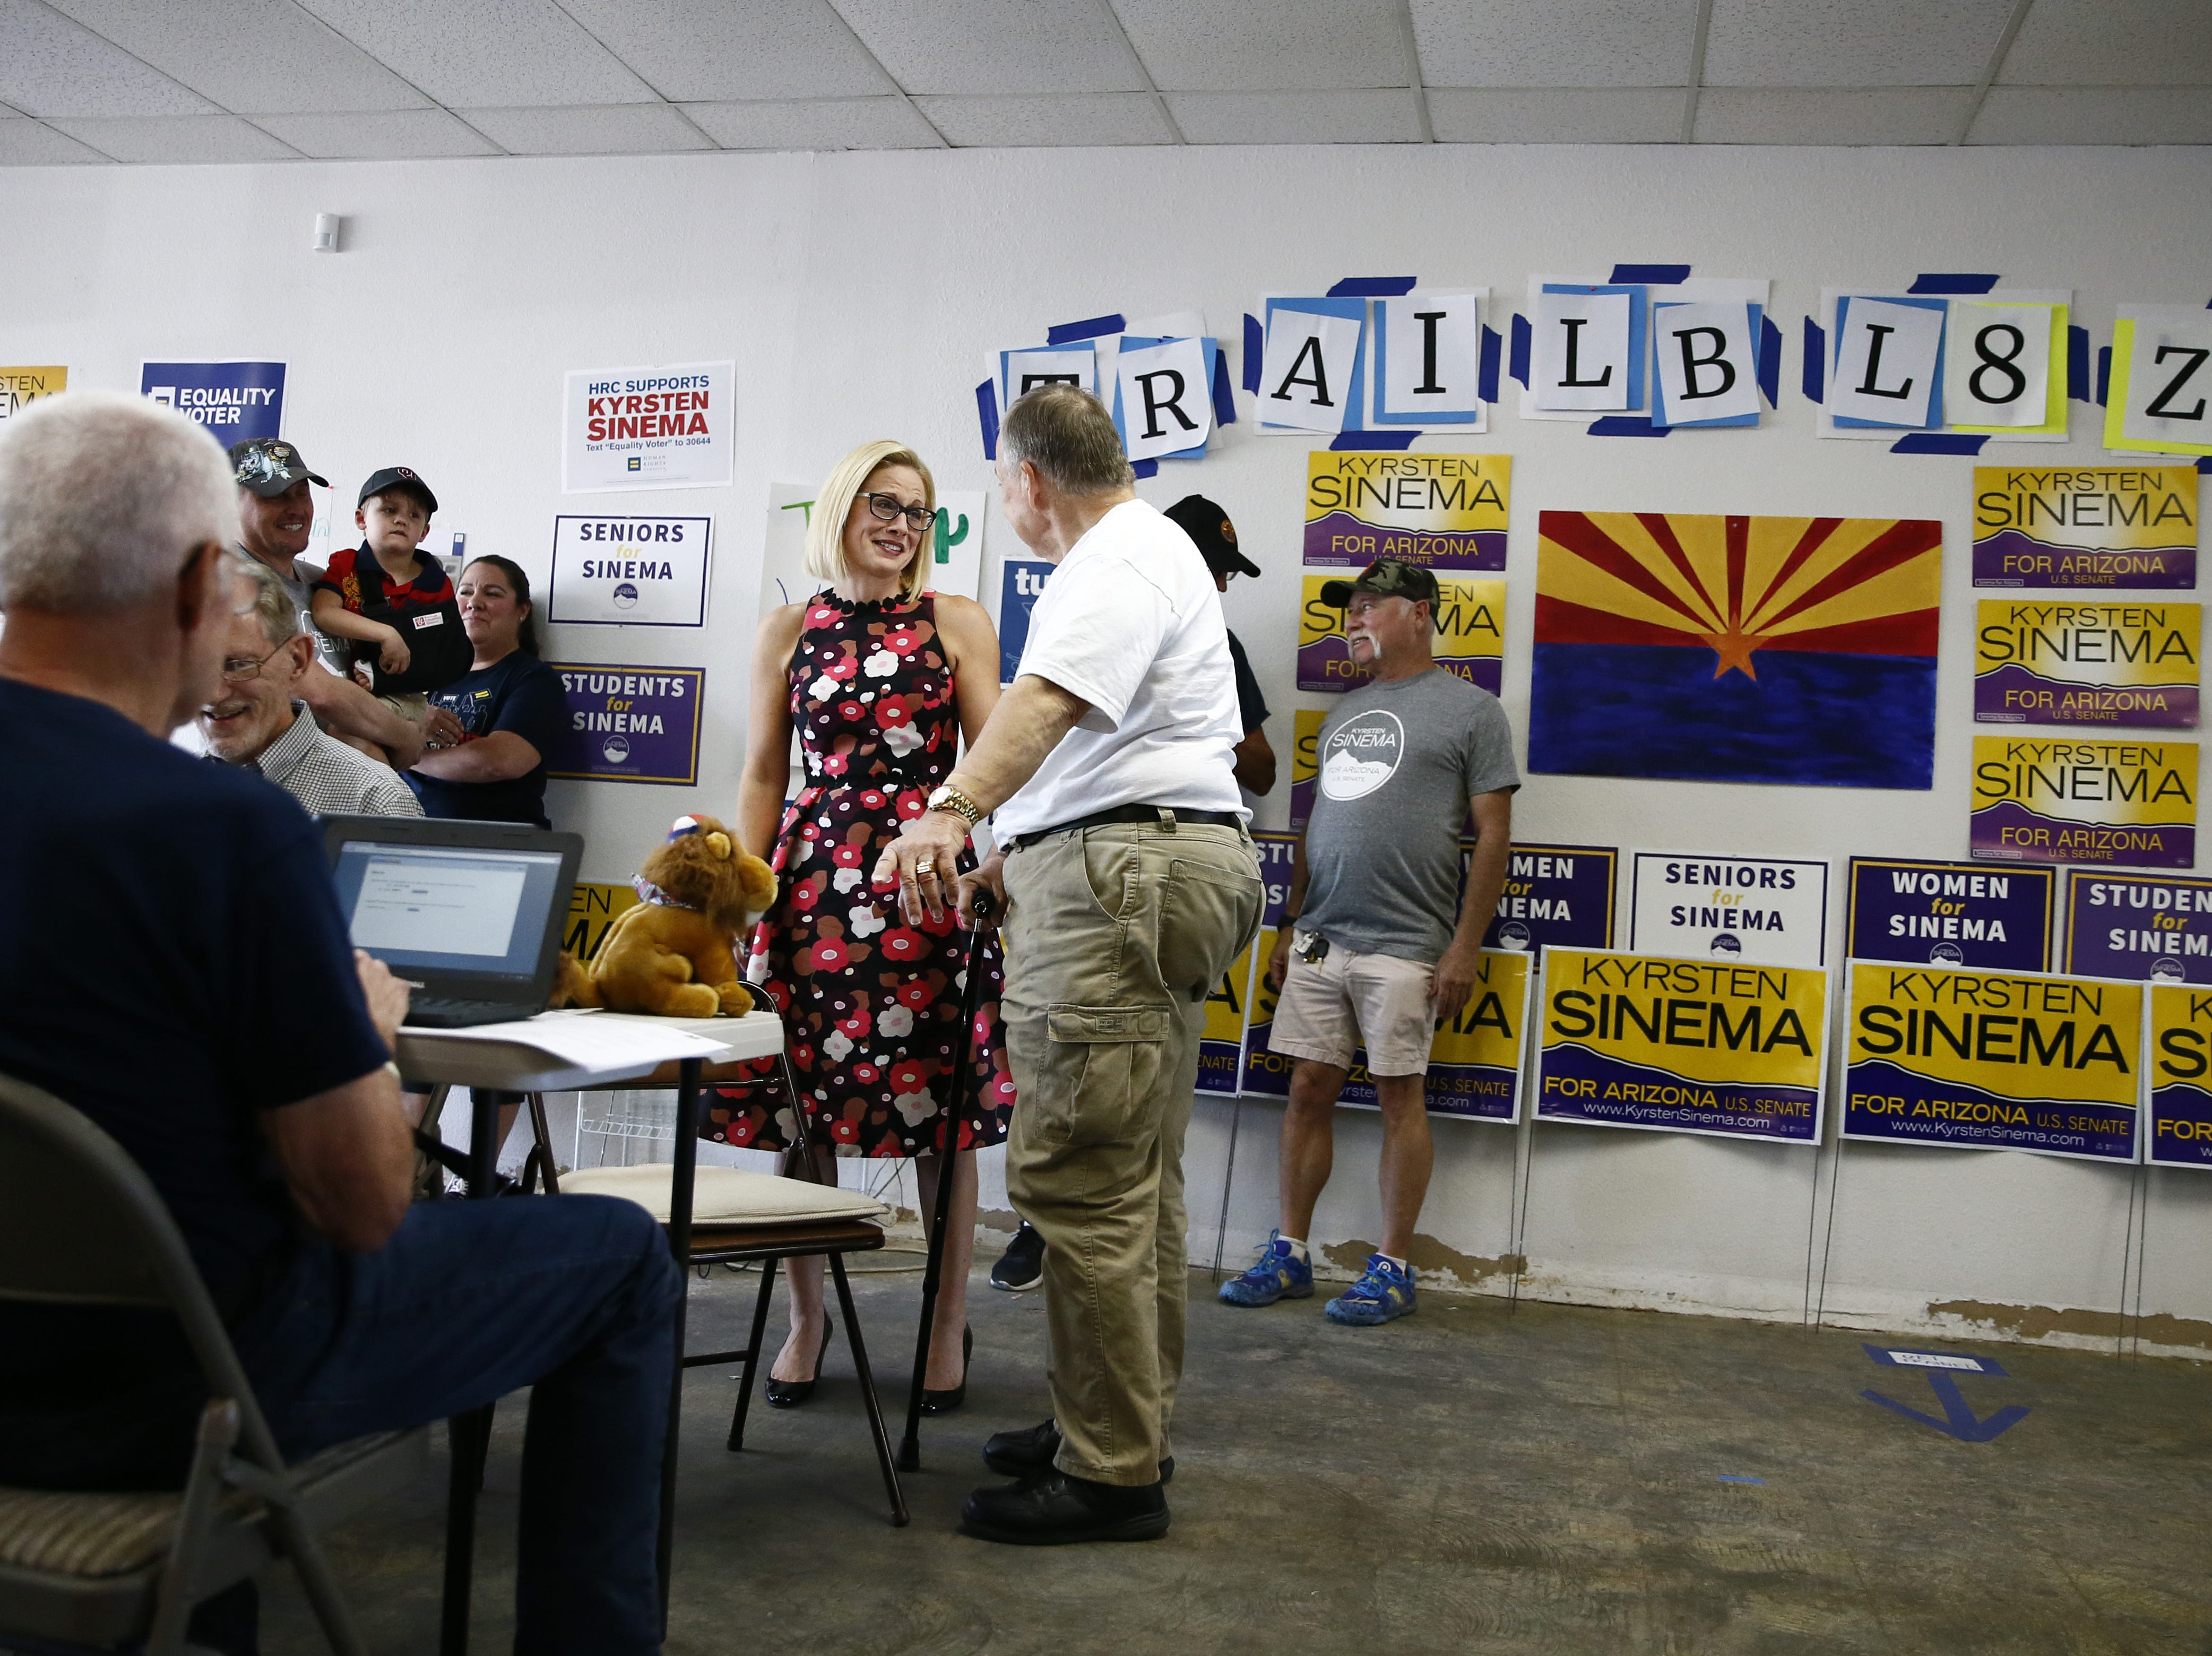 Kyrsten Sinema, the Democratic candidate for the U.S. Senate talks with veteran Leo Hintz of Laveen, Ariz. during a get-out-the-vote event with members of the Veterans for Sinema coalition and volunteers on Nov. 1 in Phoenix.